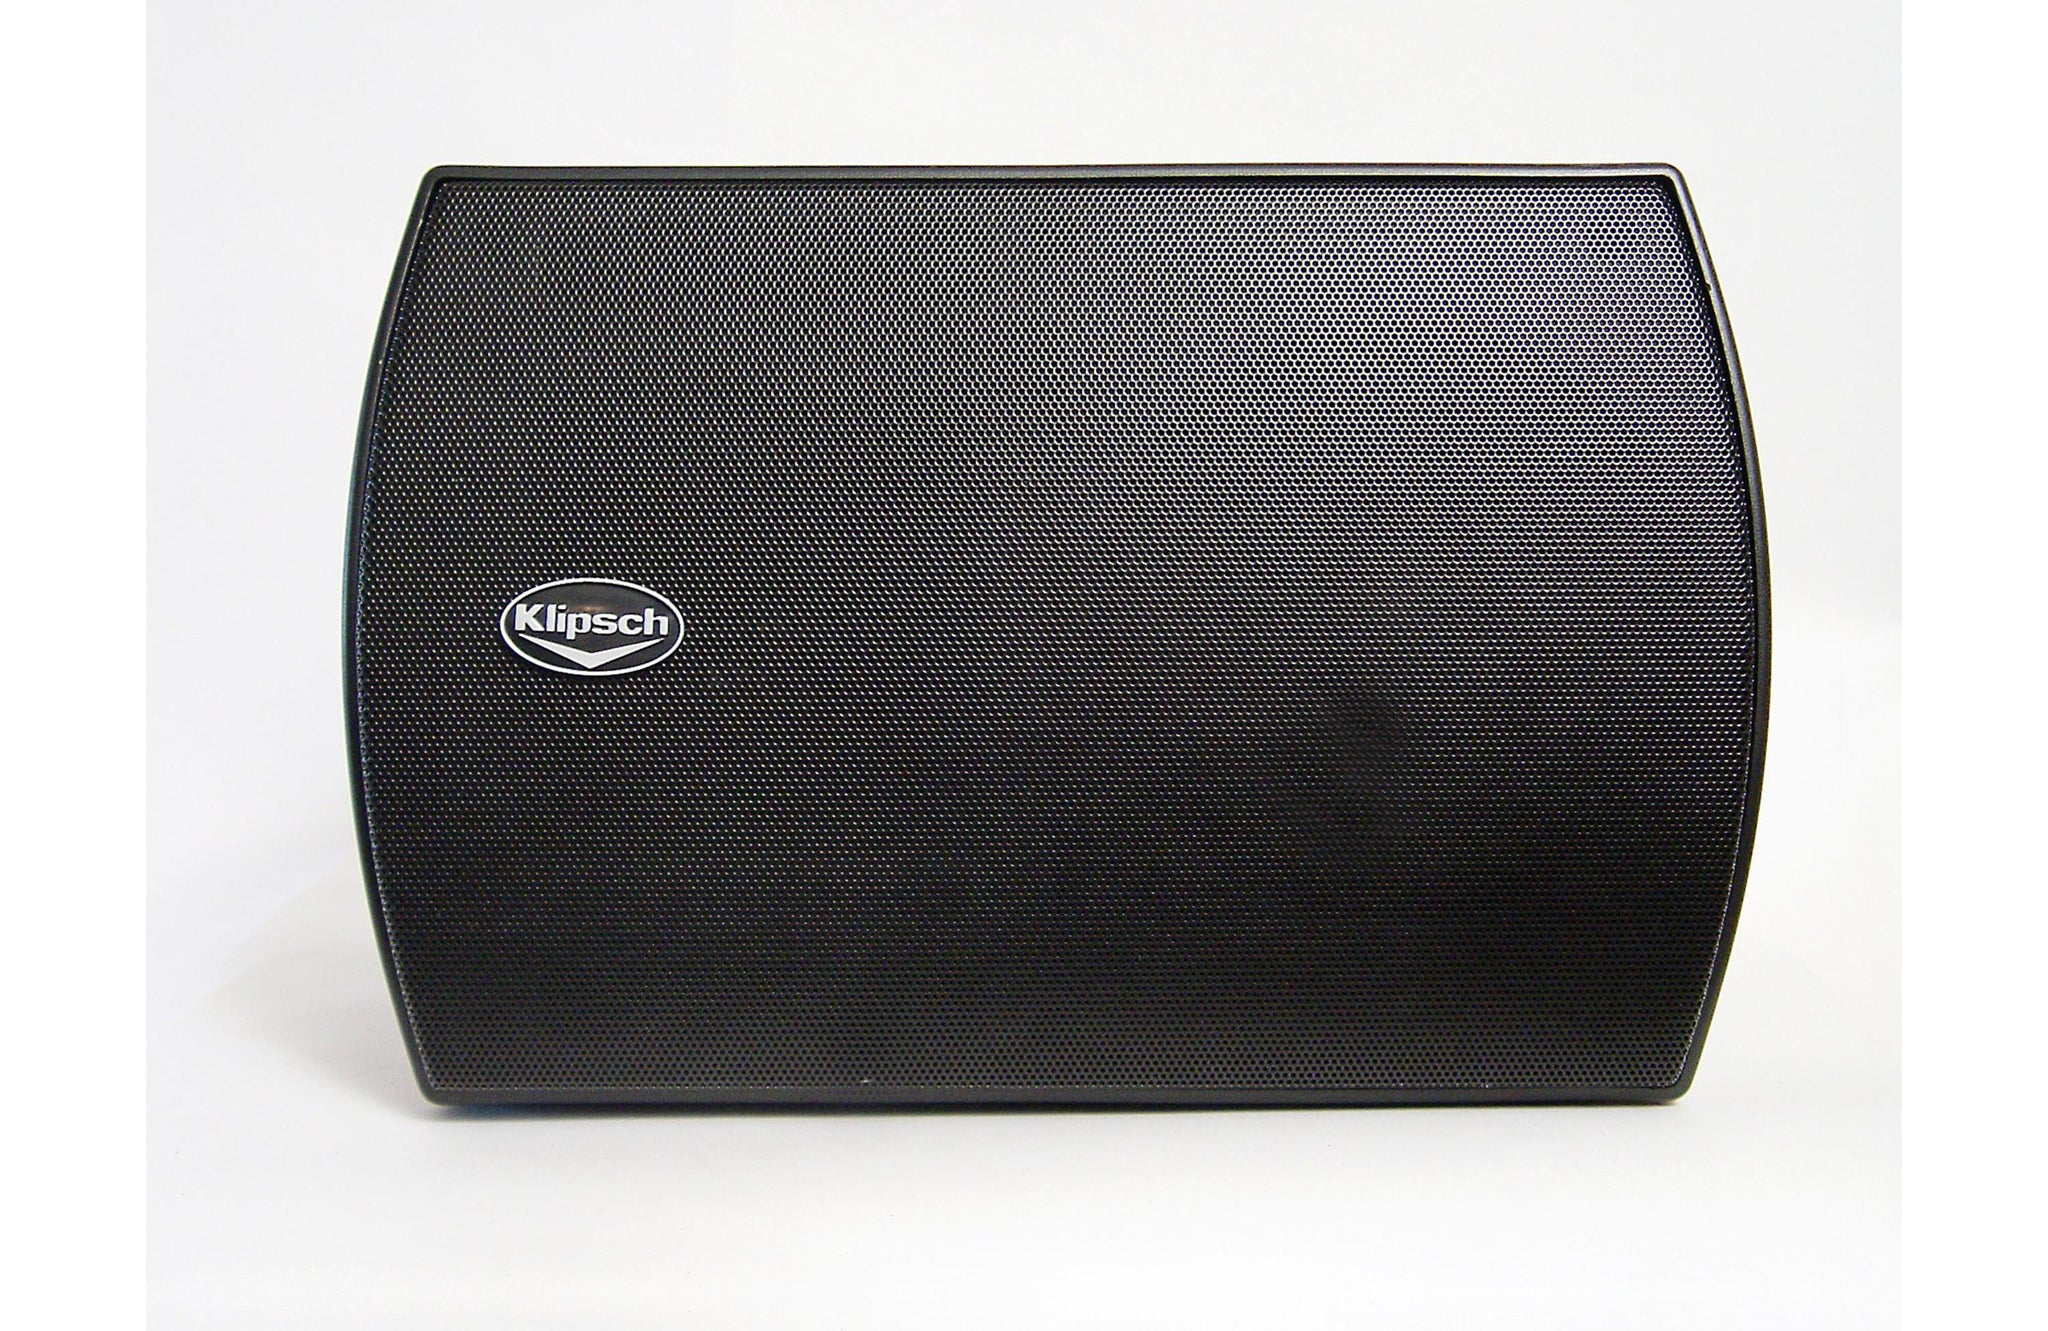 "Klipsch AW-525 5.25"" All-Weather Outdoor Speakers"